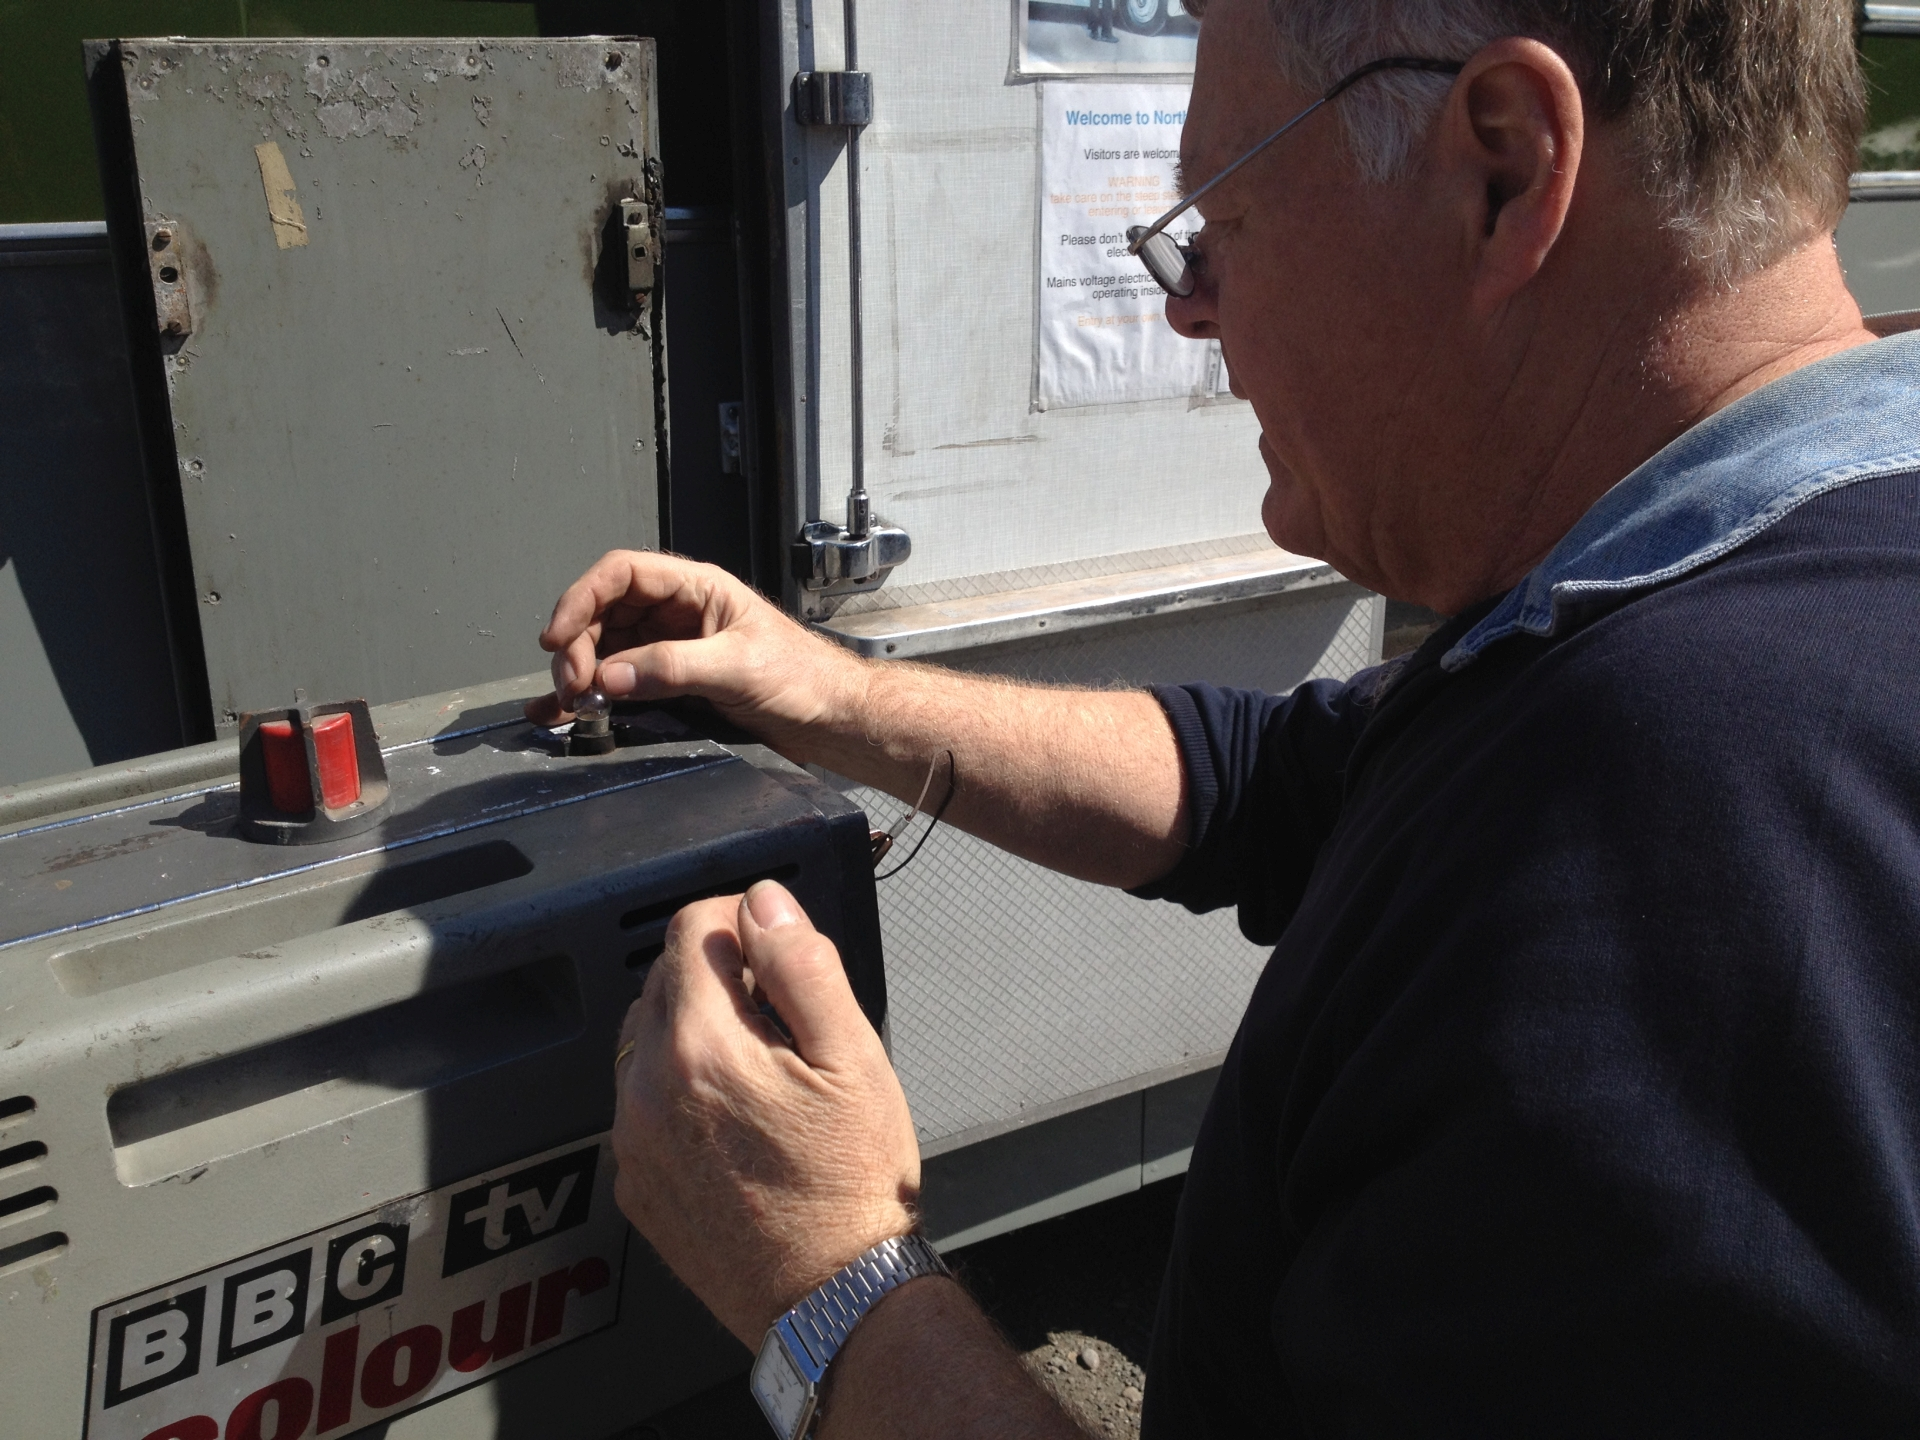 Maintaining communications: Brian Summers replaces the cue light bulb on a vintage Pye PC80 television camera.